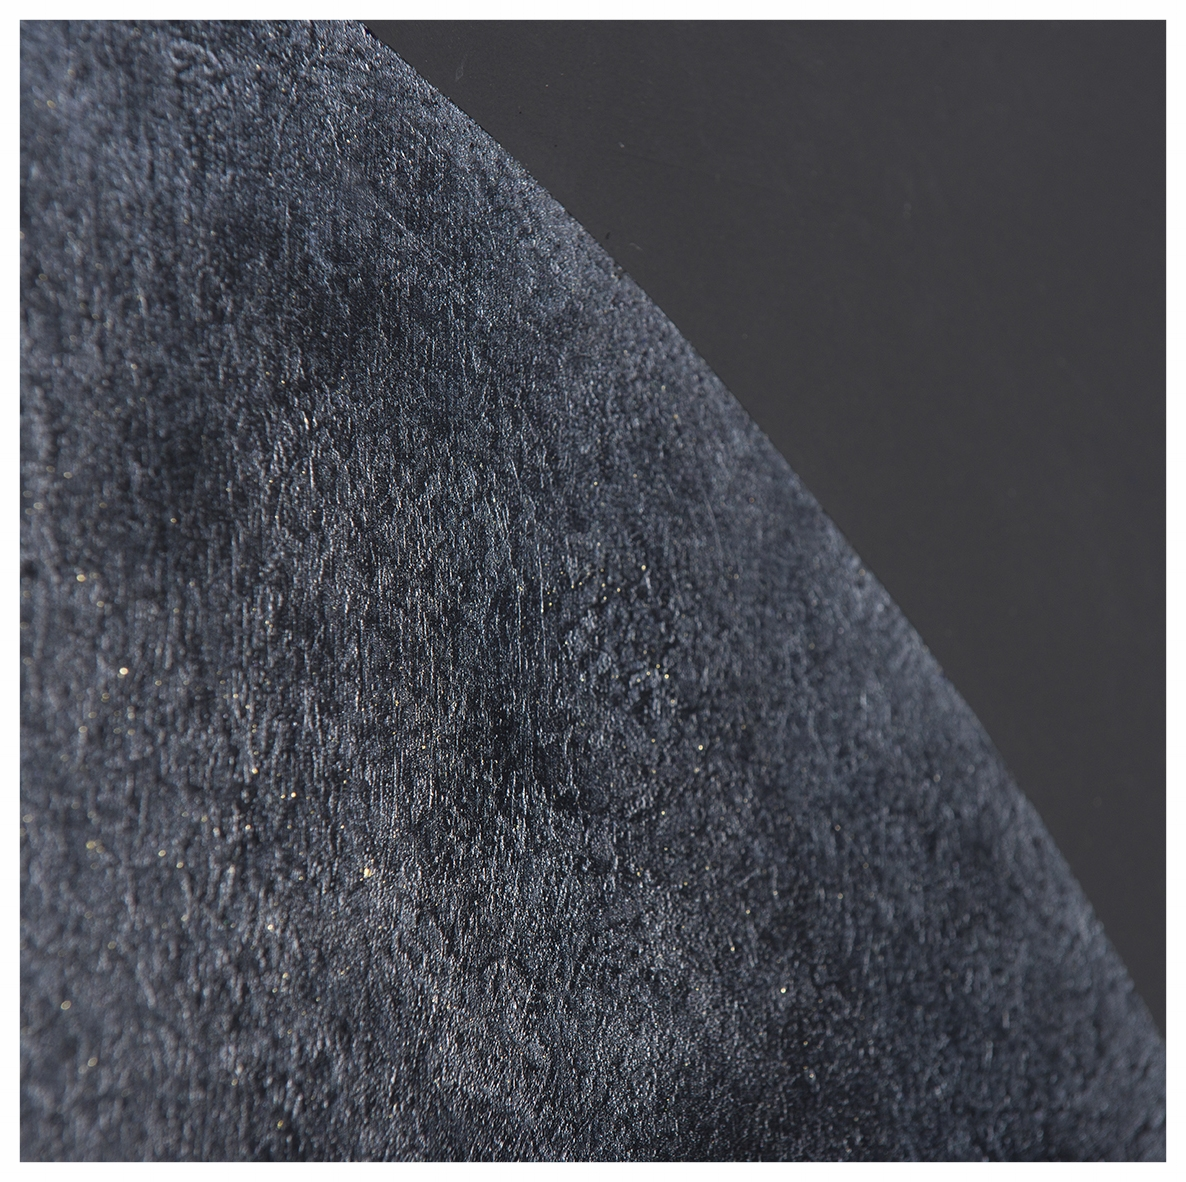 Black moon - Lacquered finition in wax - Size :  60 x 90 cm